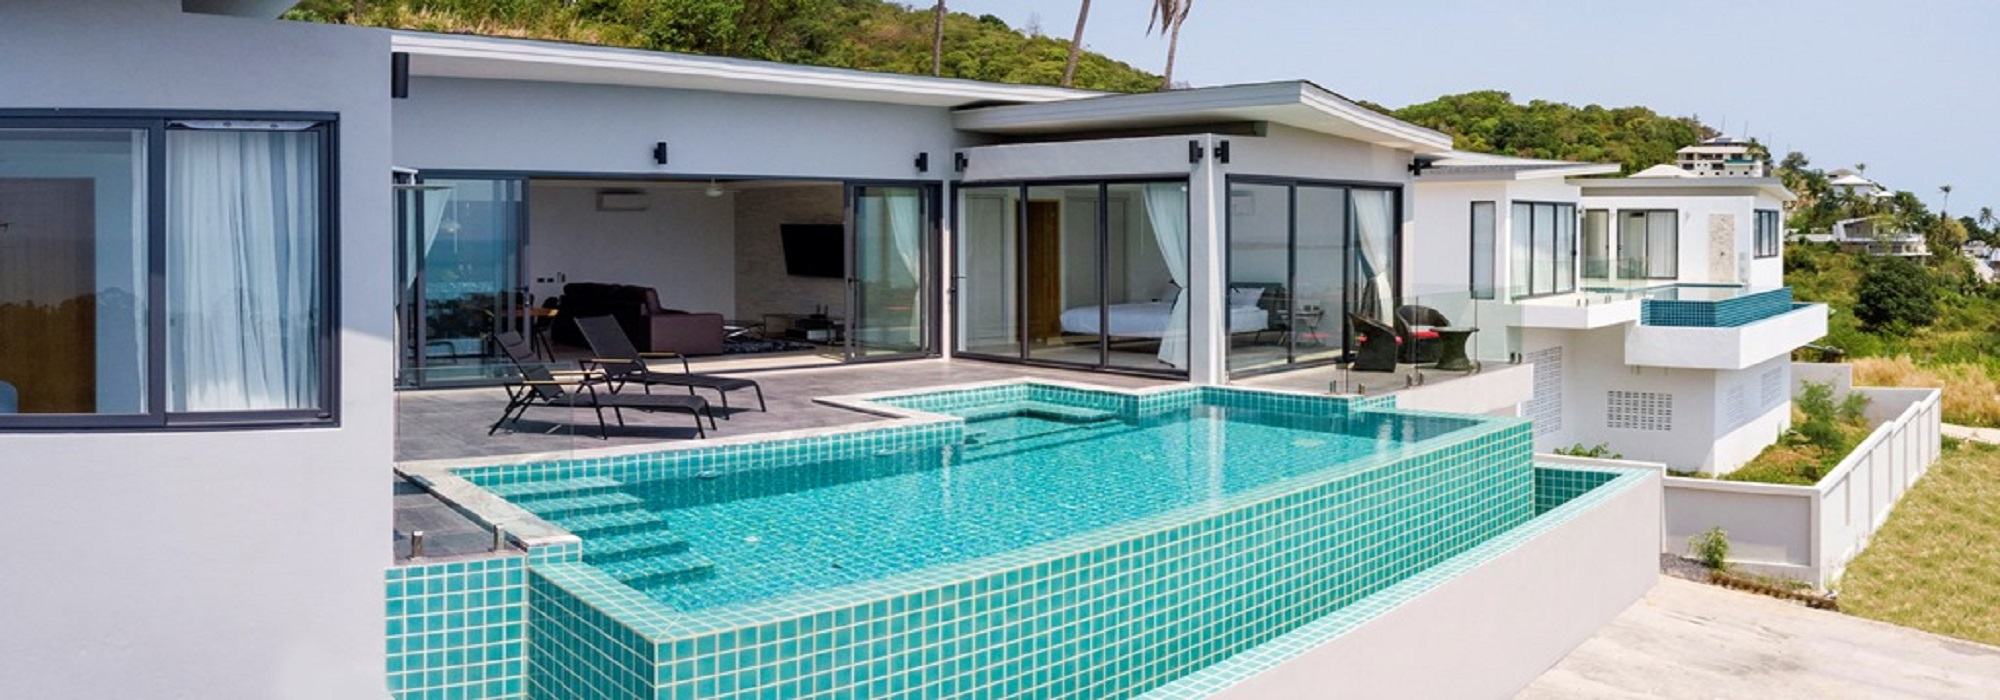 For sale villa chaweng Noi Koh Samui - 5 bedrooms pool sea view